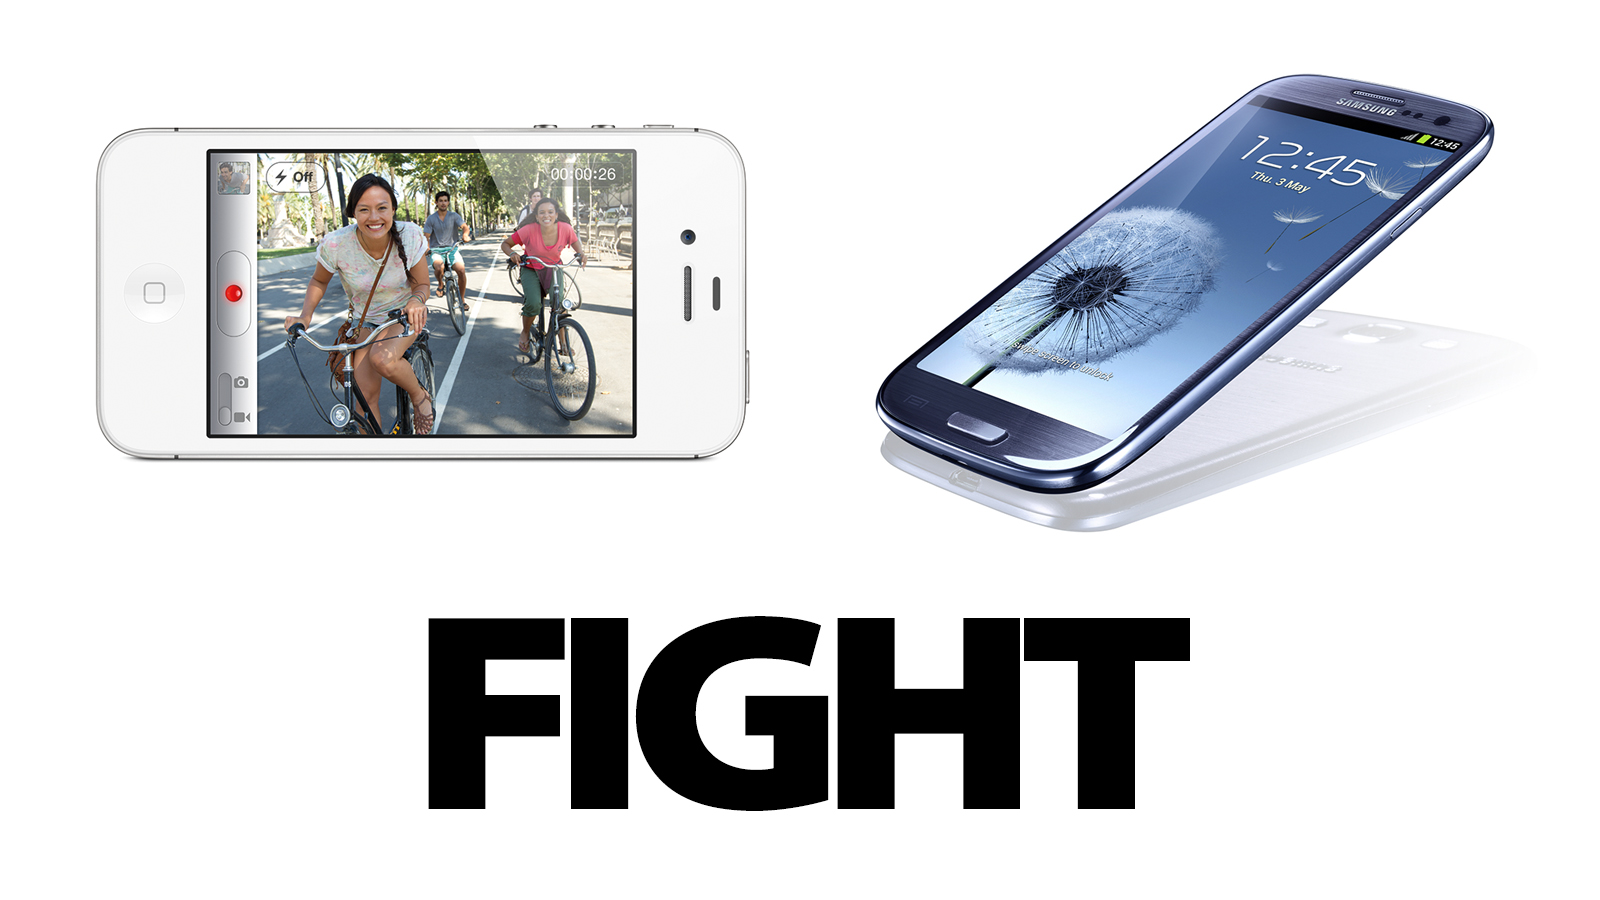 Gizmodo Face-Off: Samsung Galaxy S III Vs iPhone 4S